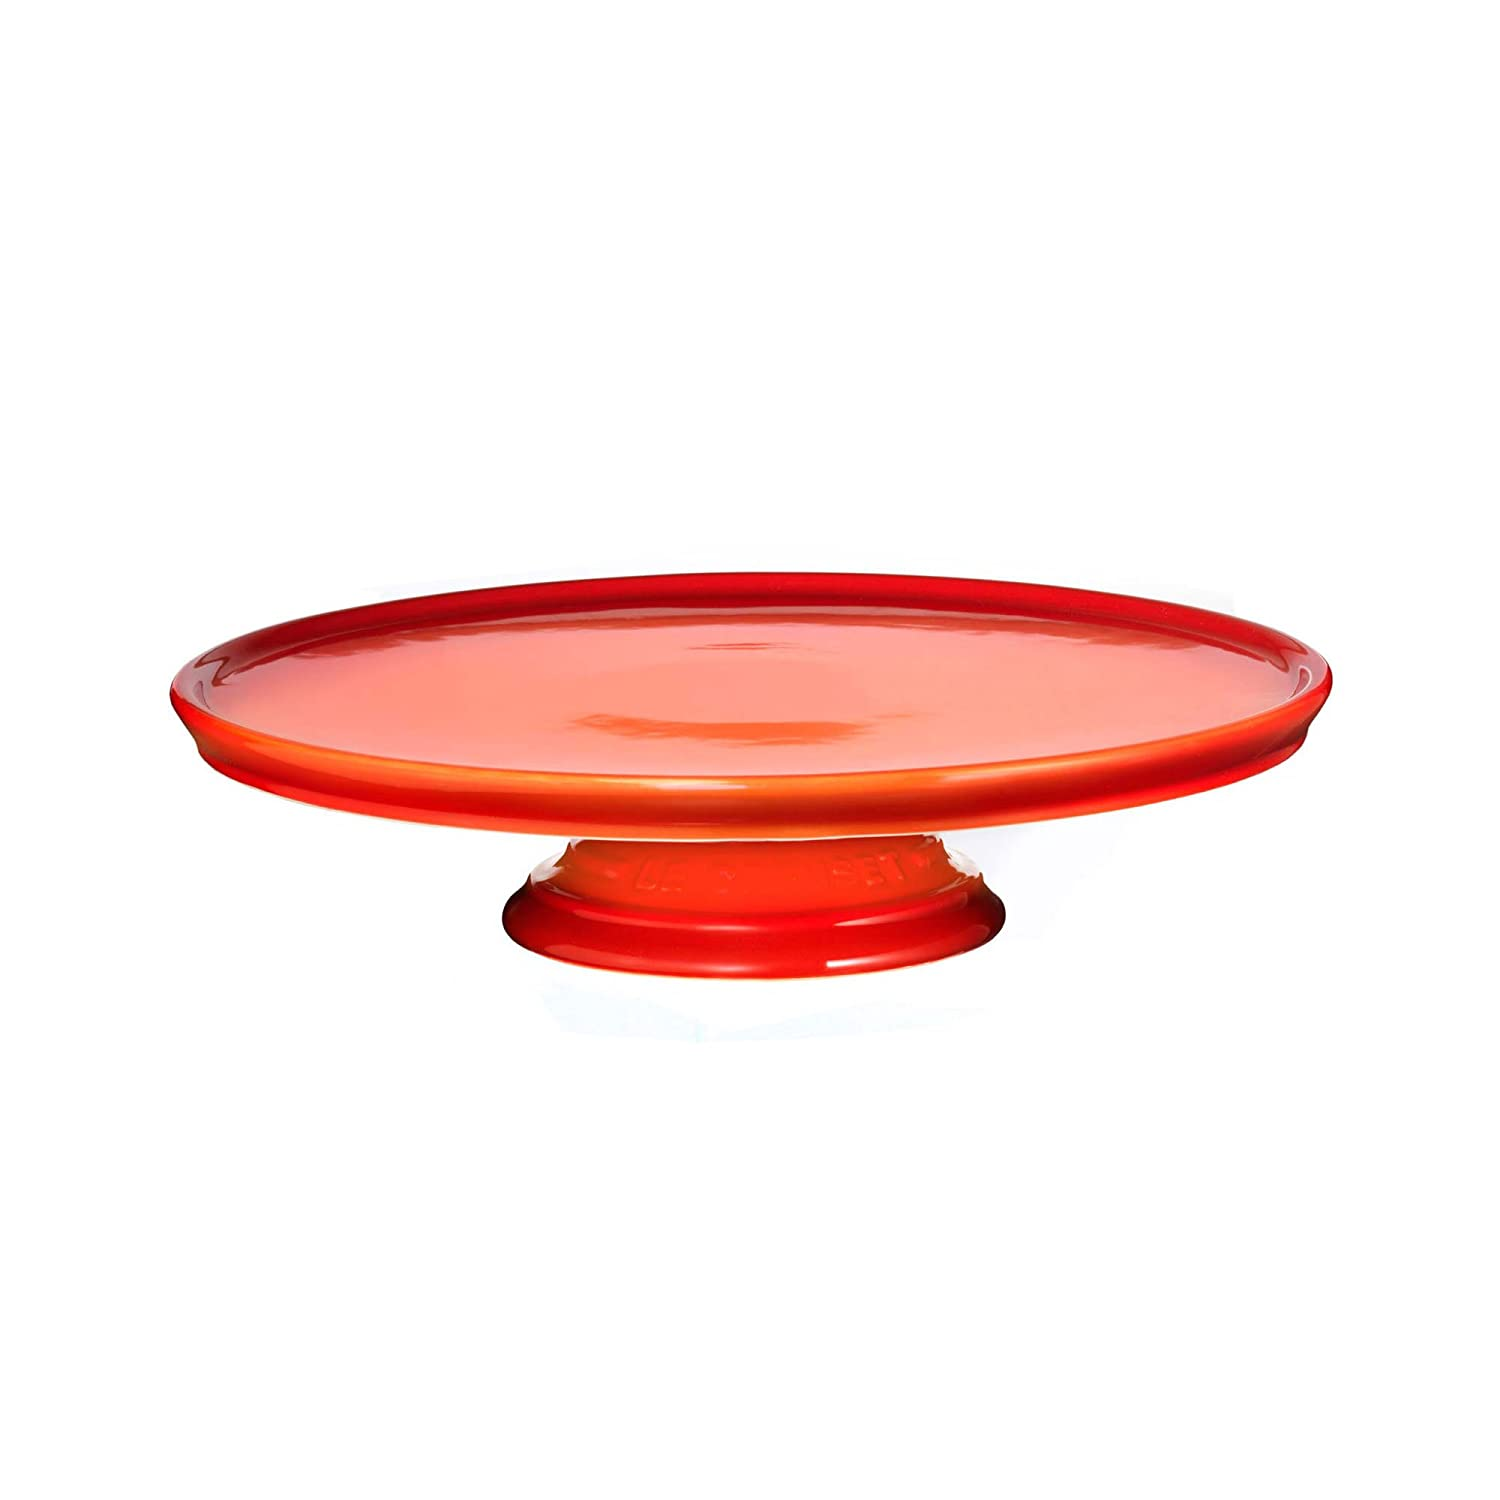 Le Creuset PG8600-232 Stoneware Cake Stand, 12-Inch, Flame